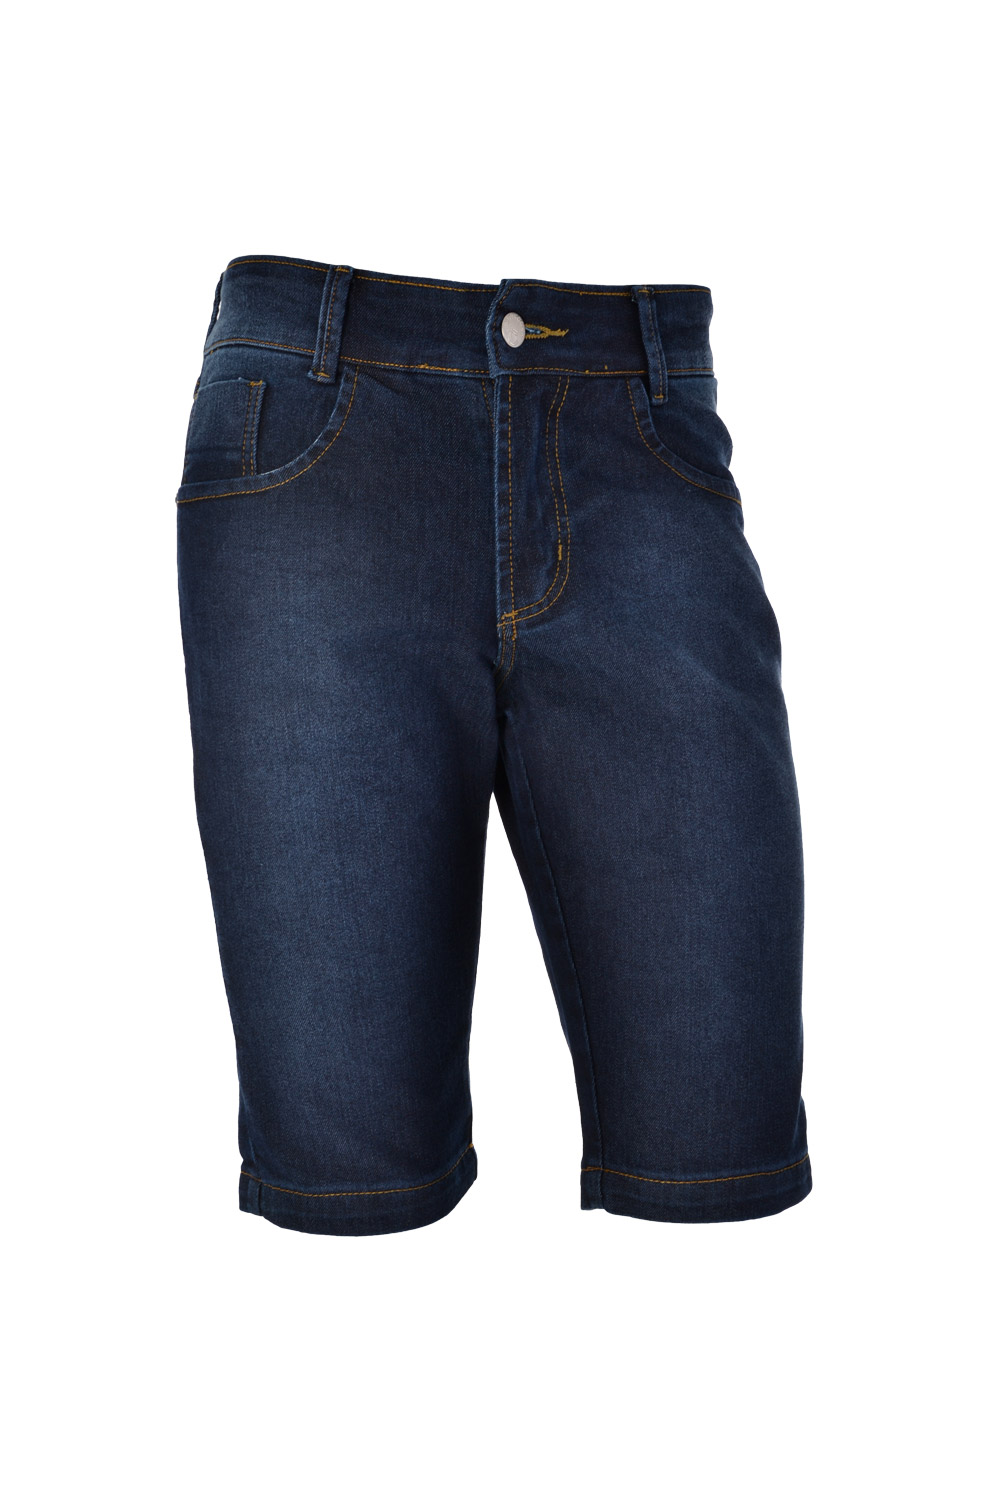 BERMUDA BLUES SLIM POLIALGODAO E ELASTANO STRETCH STONED BLACK BLUE